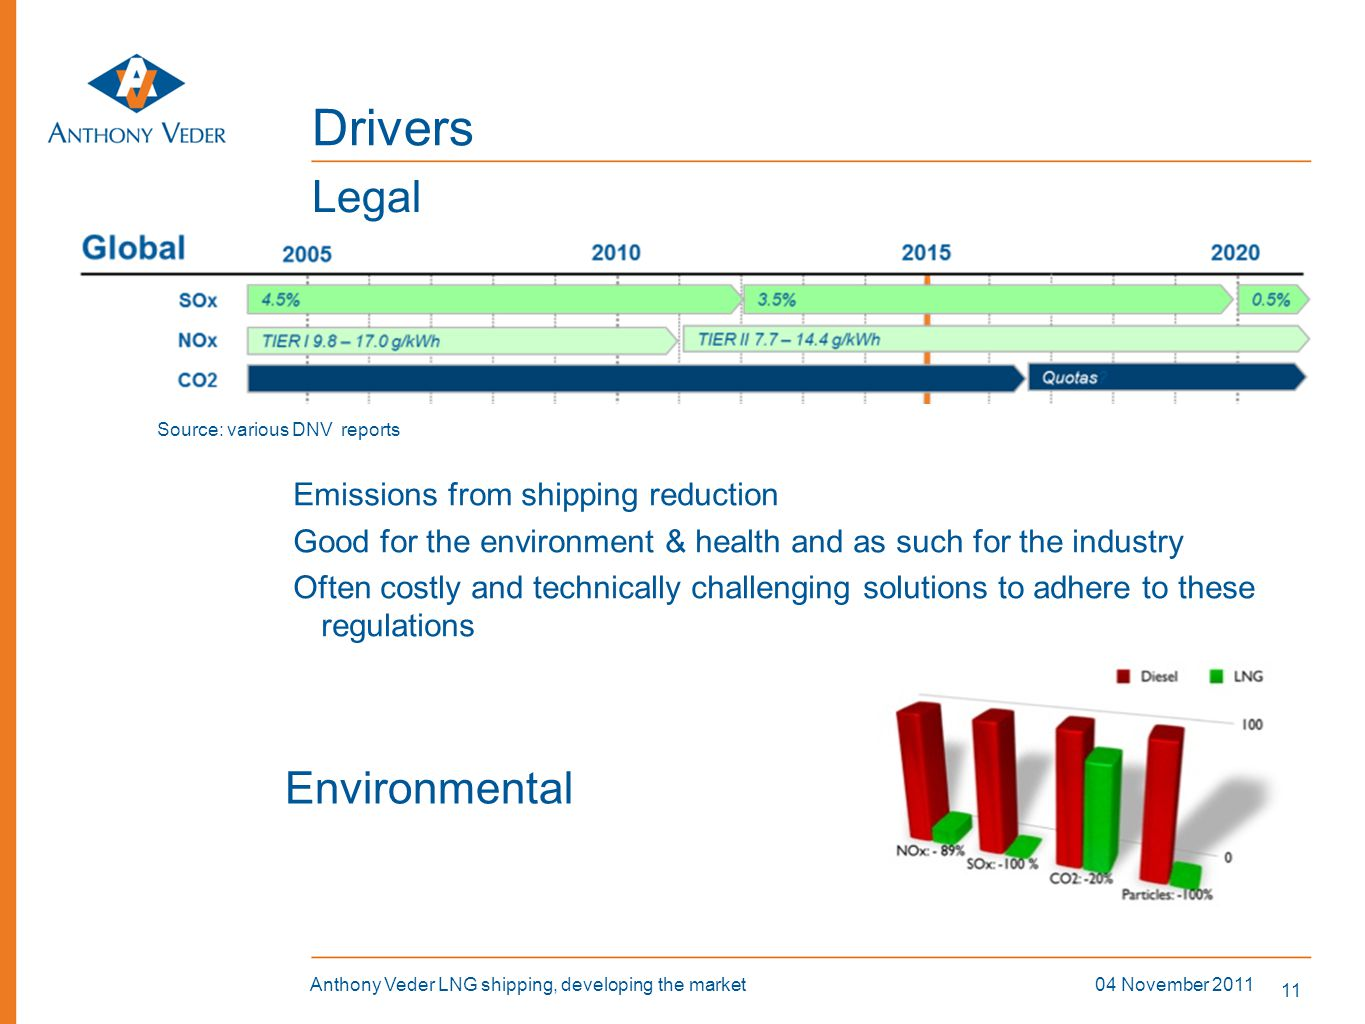 Drivers Legal Environmental Emissions from shipping reduction